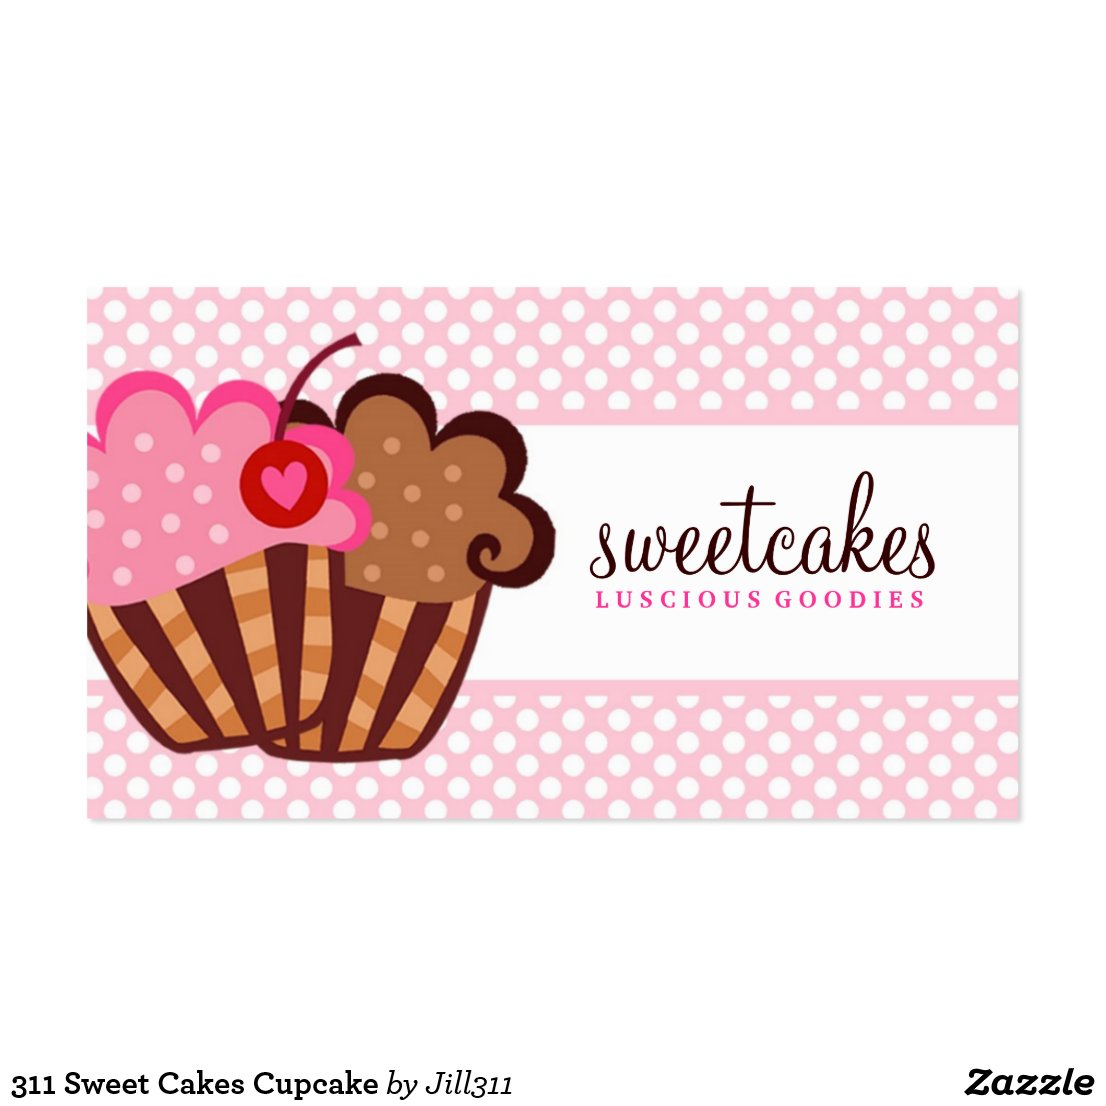 Cupcake business card template whimsical cupcake business 311 sweet cakes cupcake magicingreecefo Images